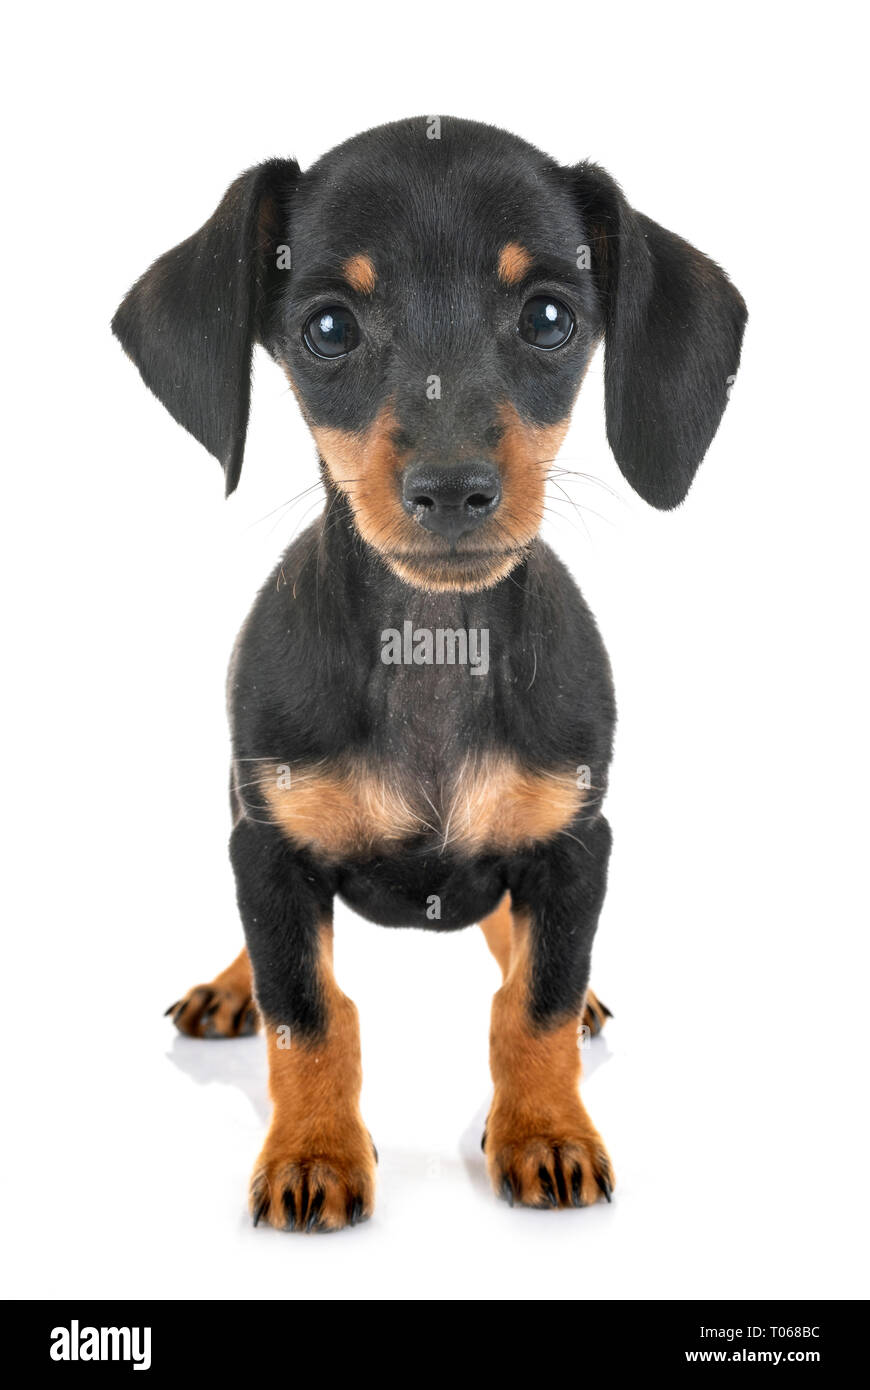 Black Tan Miniature Dachshund Puppy High Resolution Stock Photography And Images Alamy